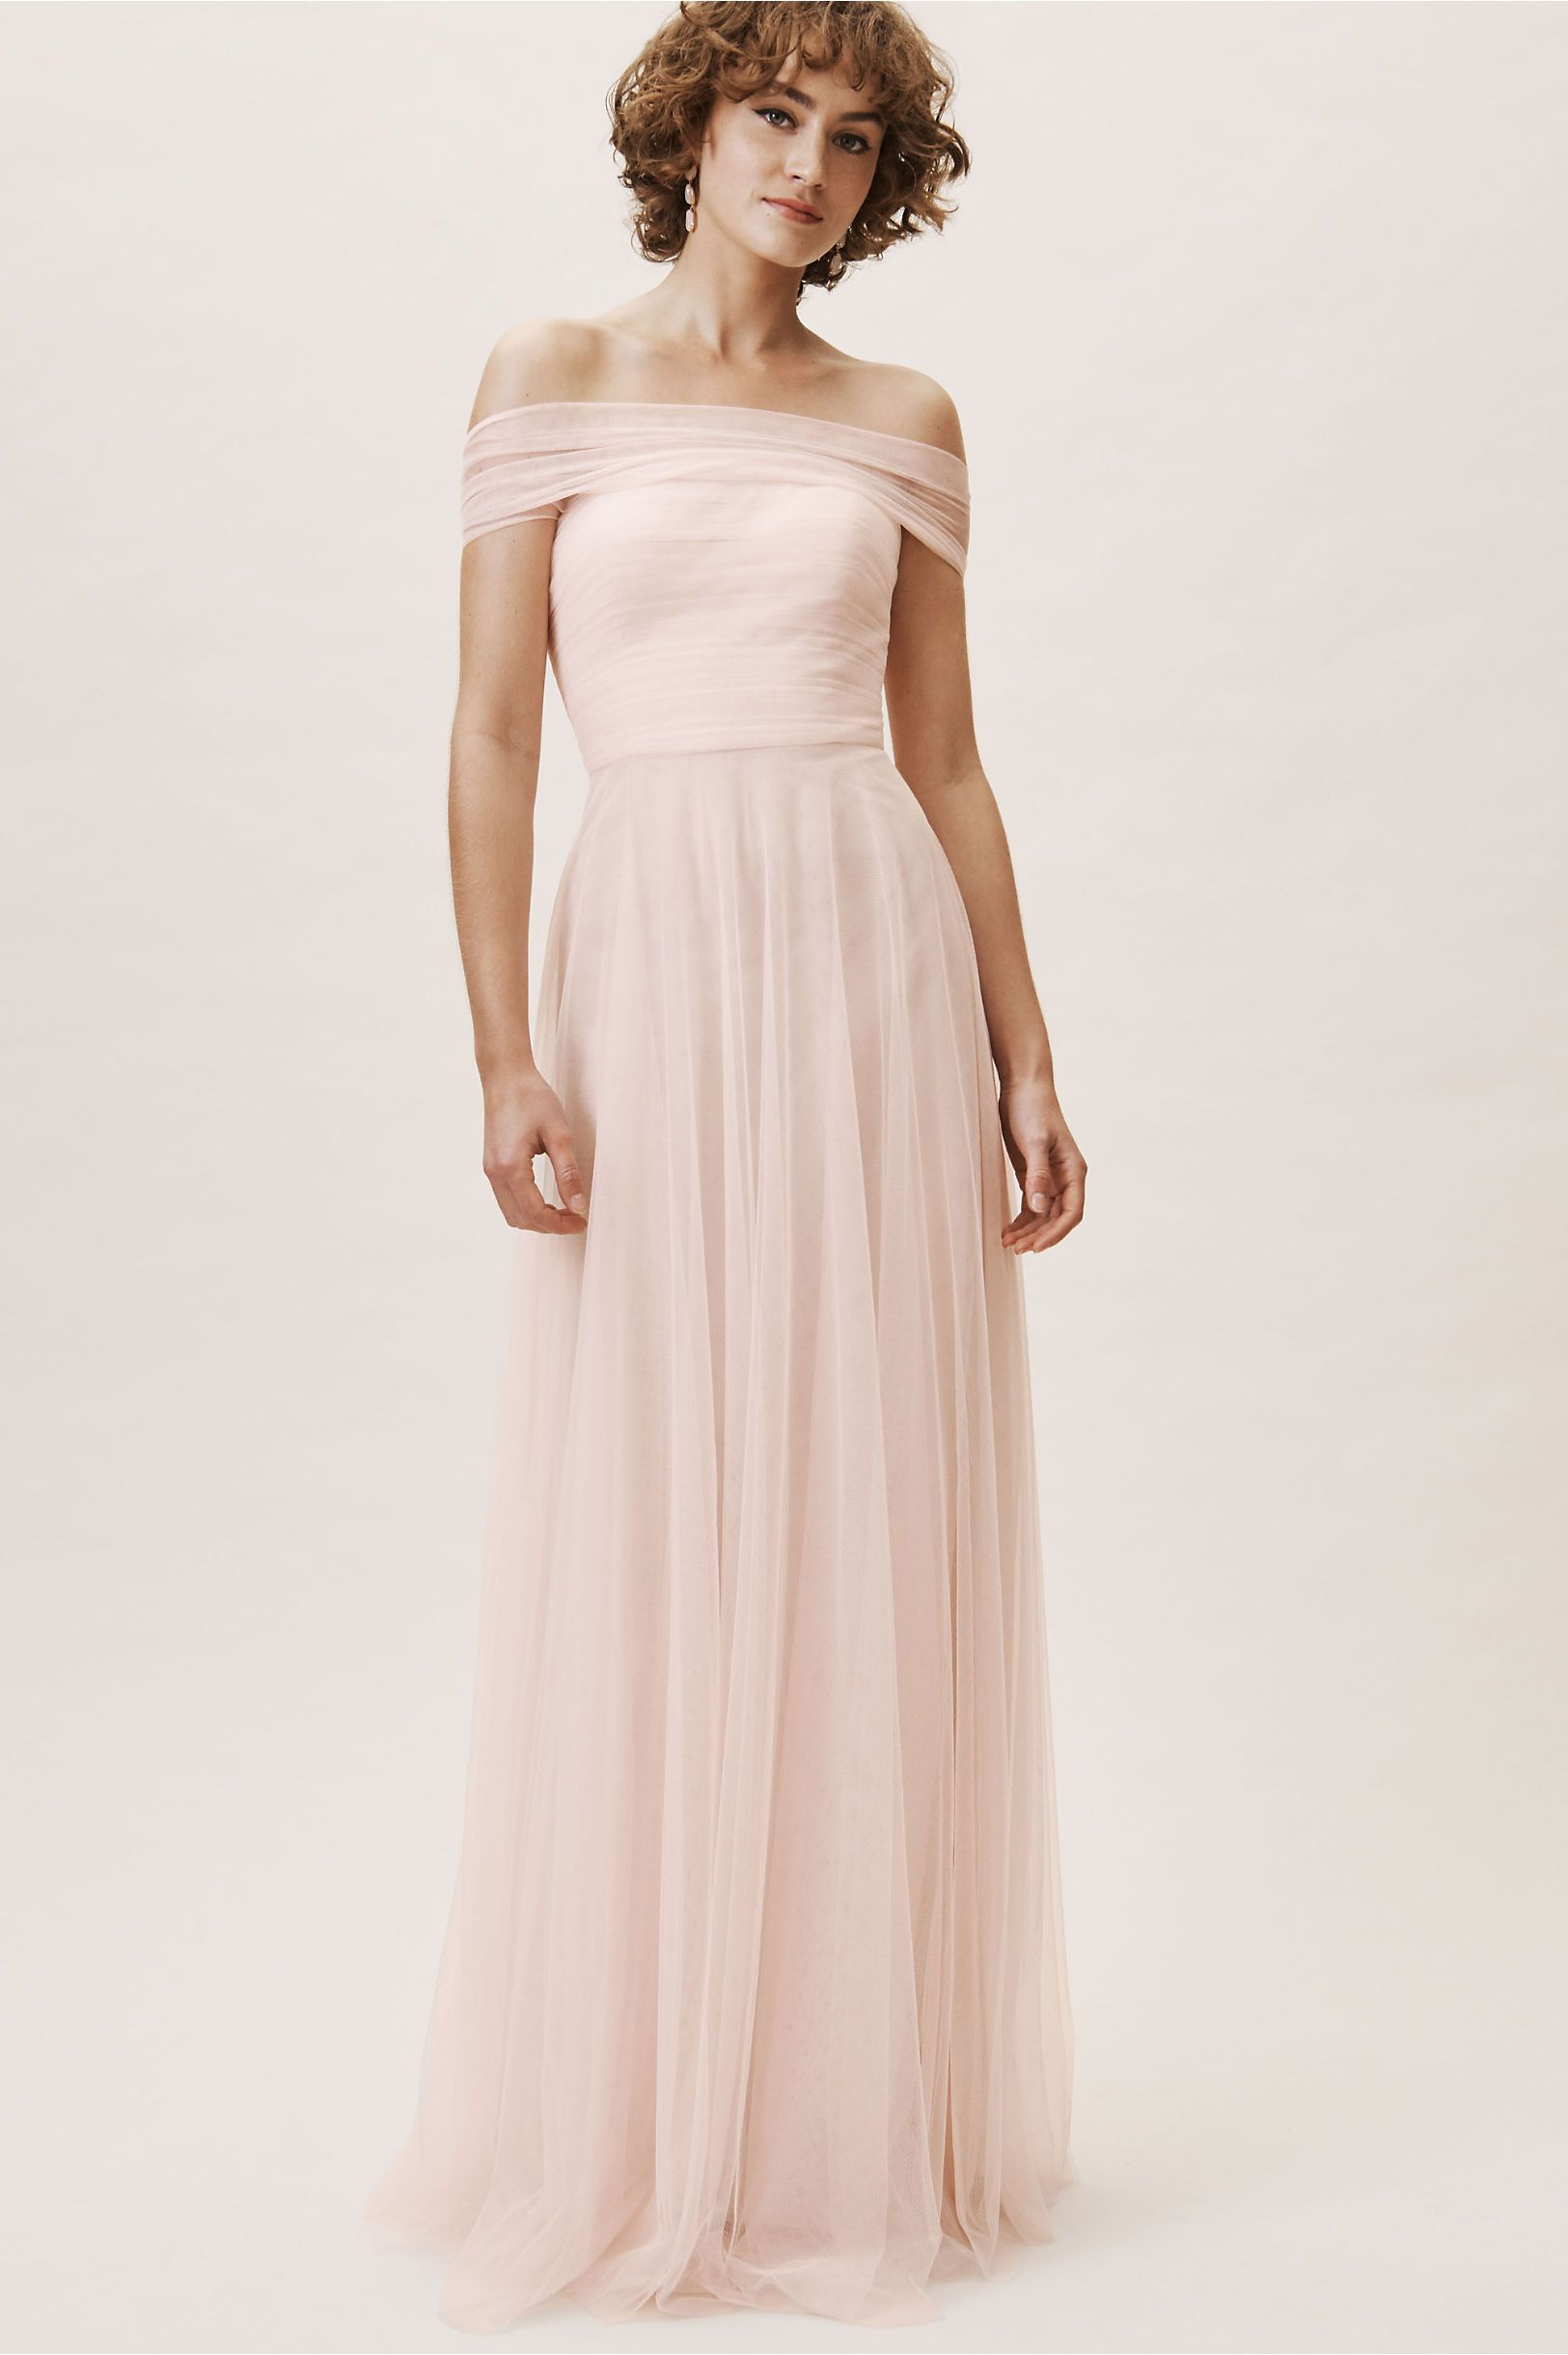 6318e077a1 BHLDN's Jenny Yoo Ryder Dress in Soft Blush in 2019 | Products ...